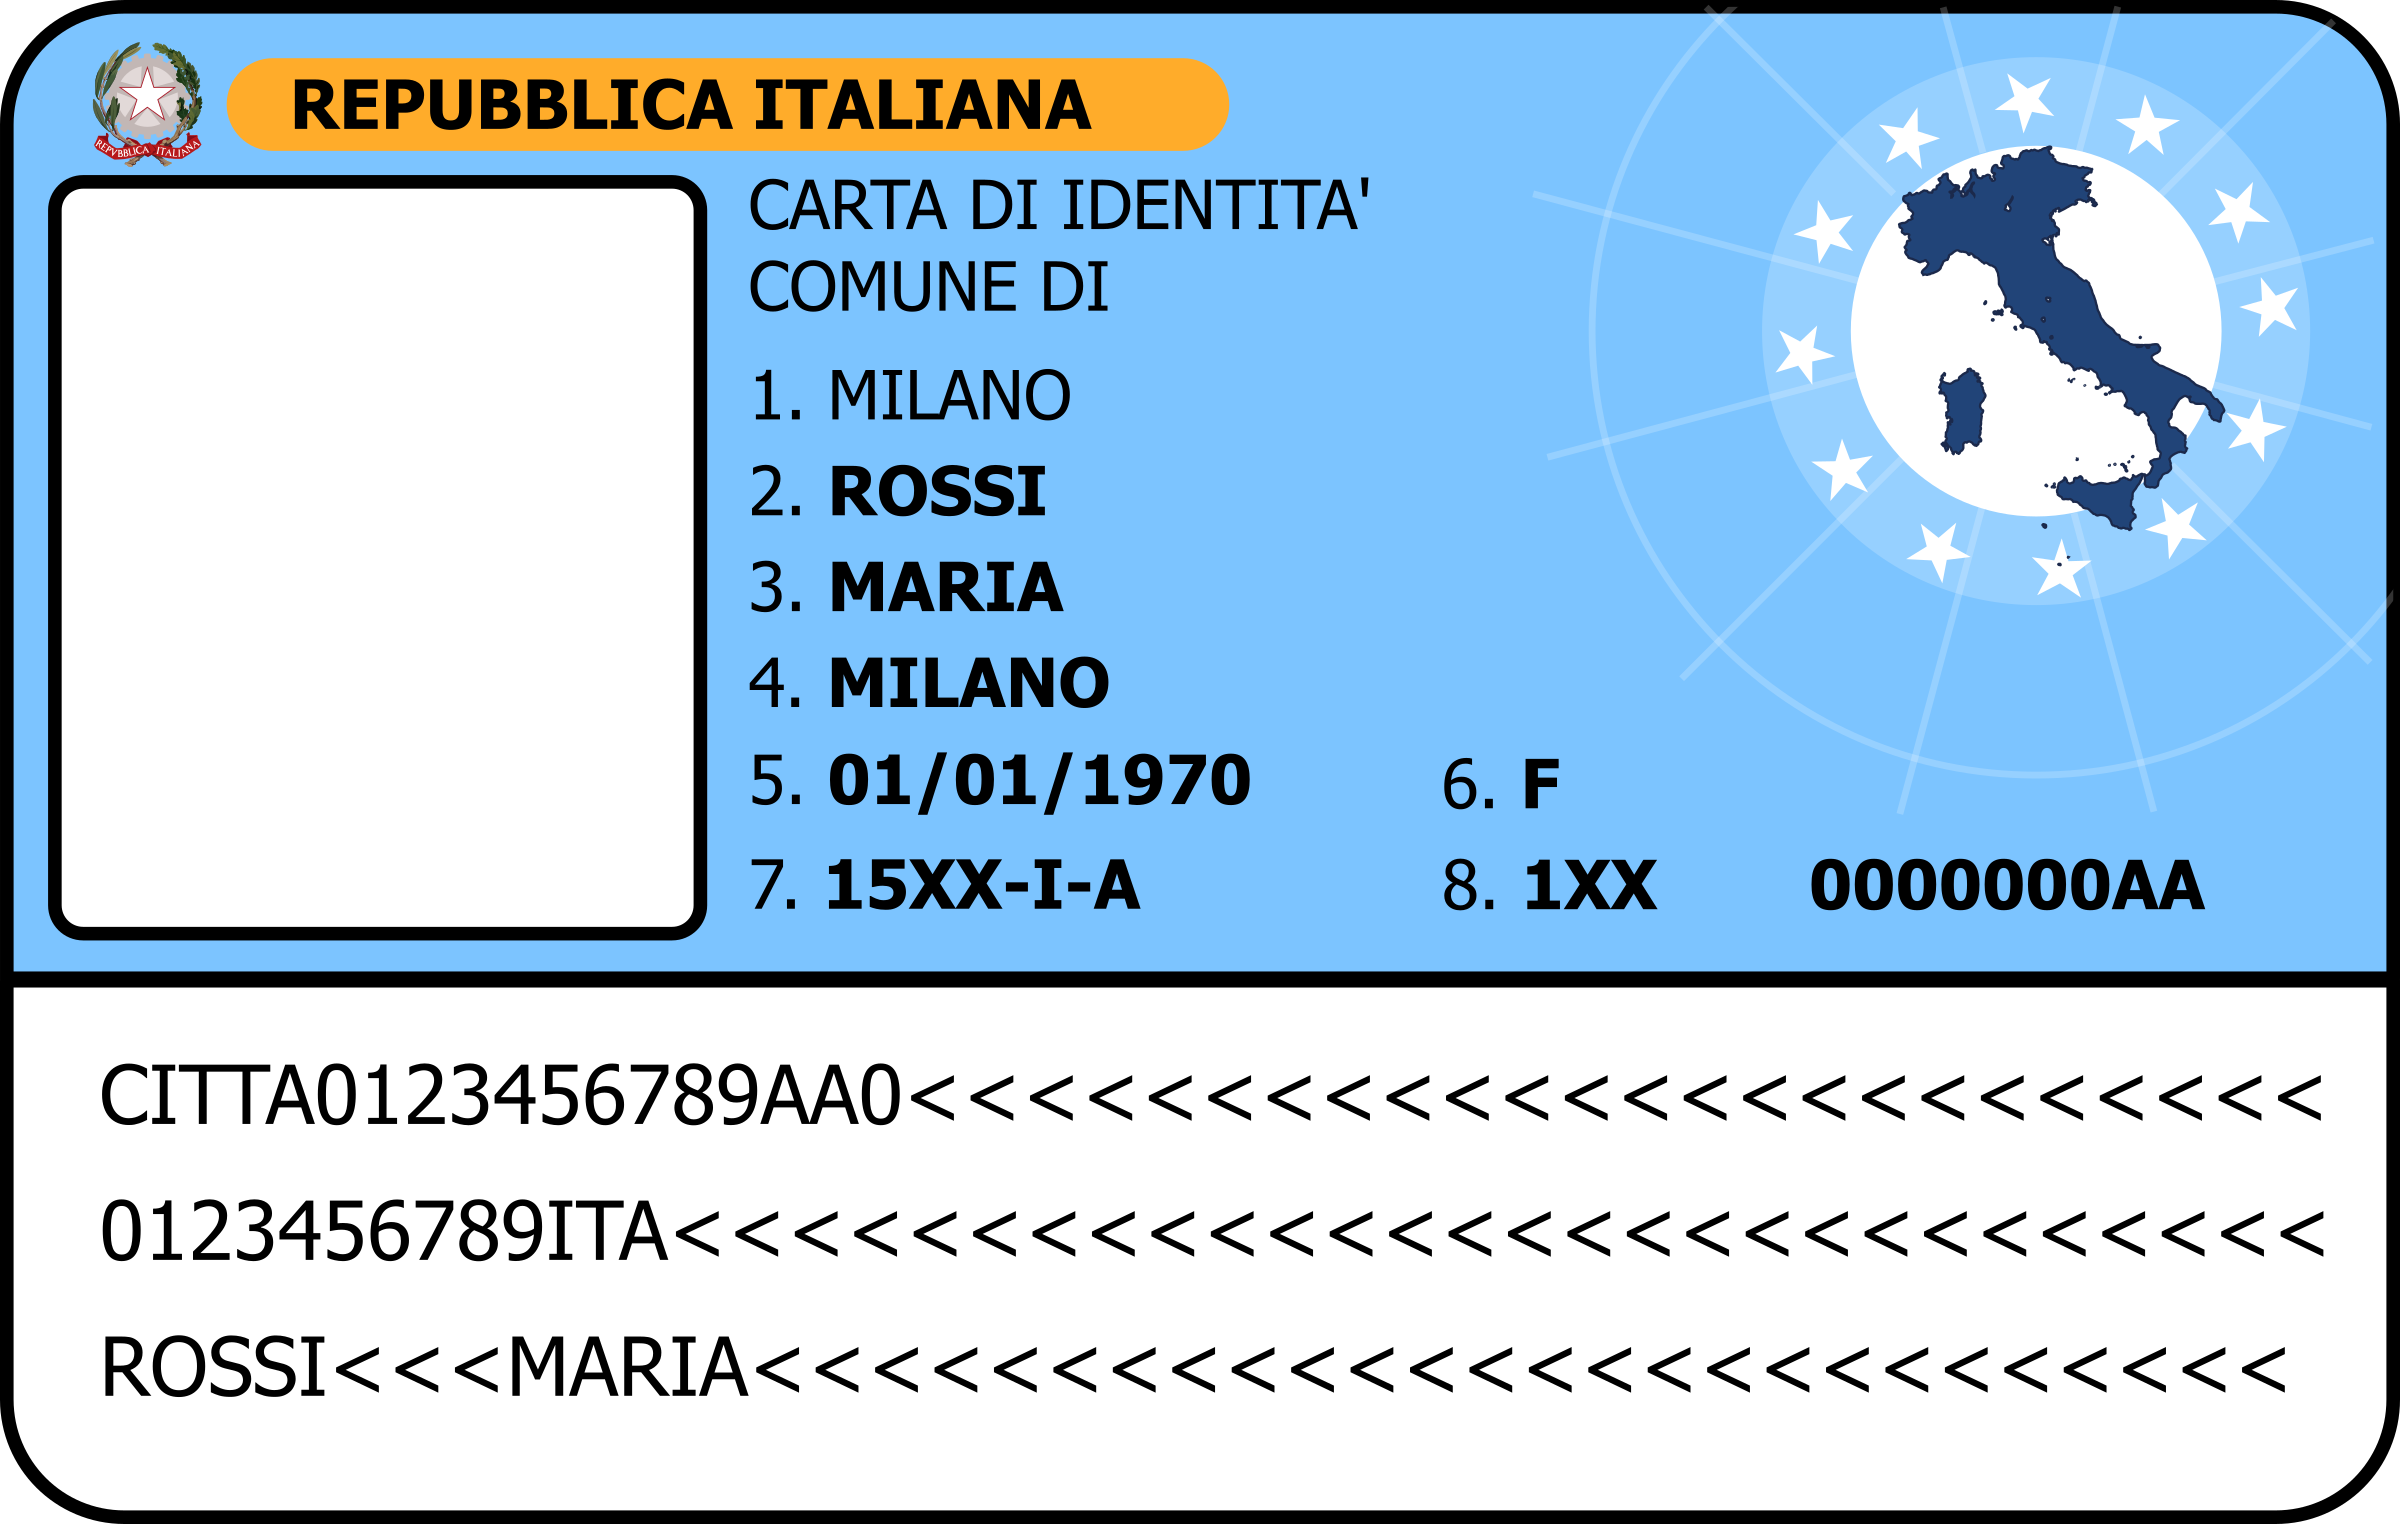 Carta d'identità - ID card by krypt